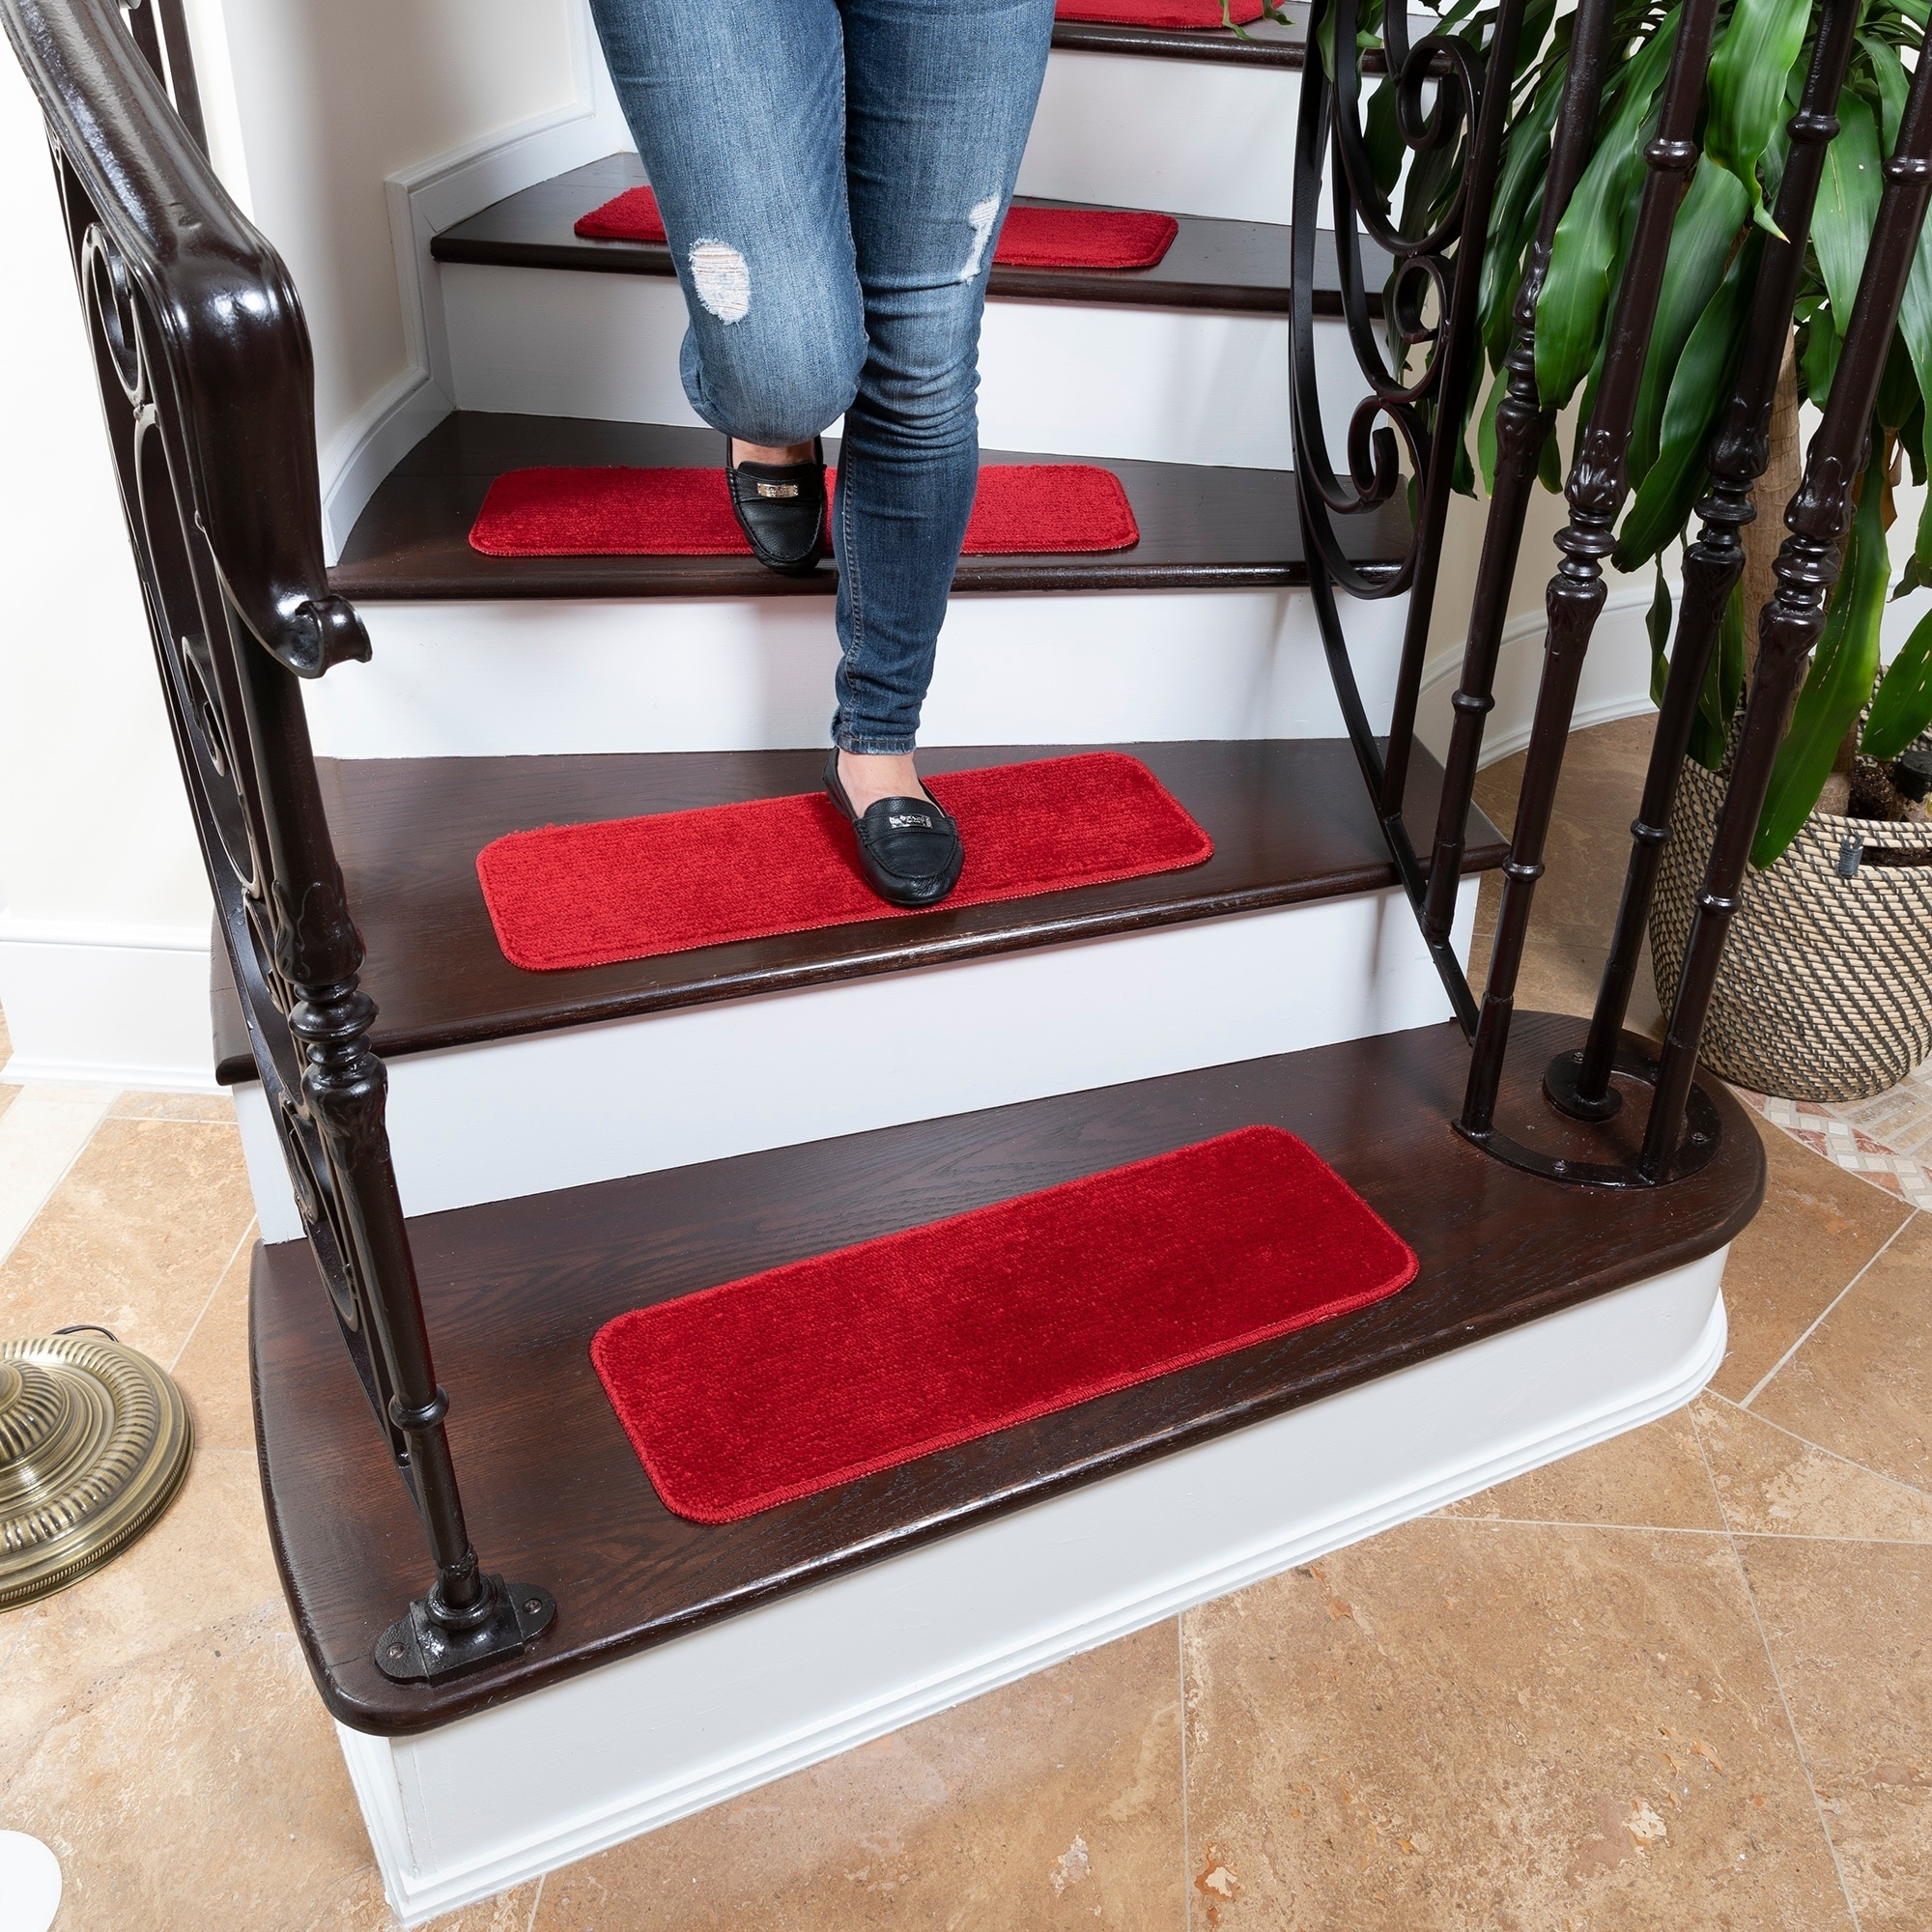 Skid resistant Ottomanson Softy Stair Tread Mats Solid Brown 7 Piece 9x26 Rubber Backing Non Slip Carpet